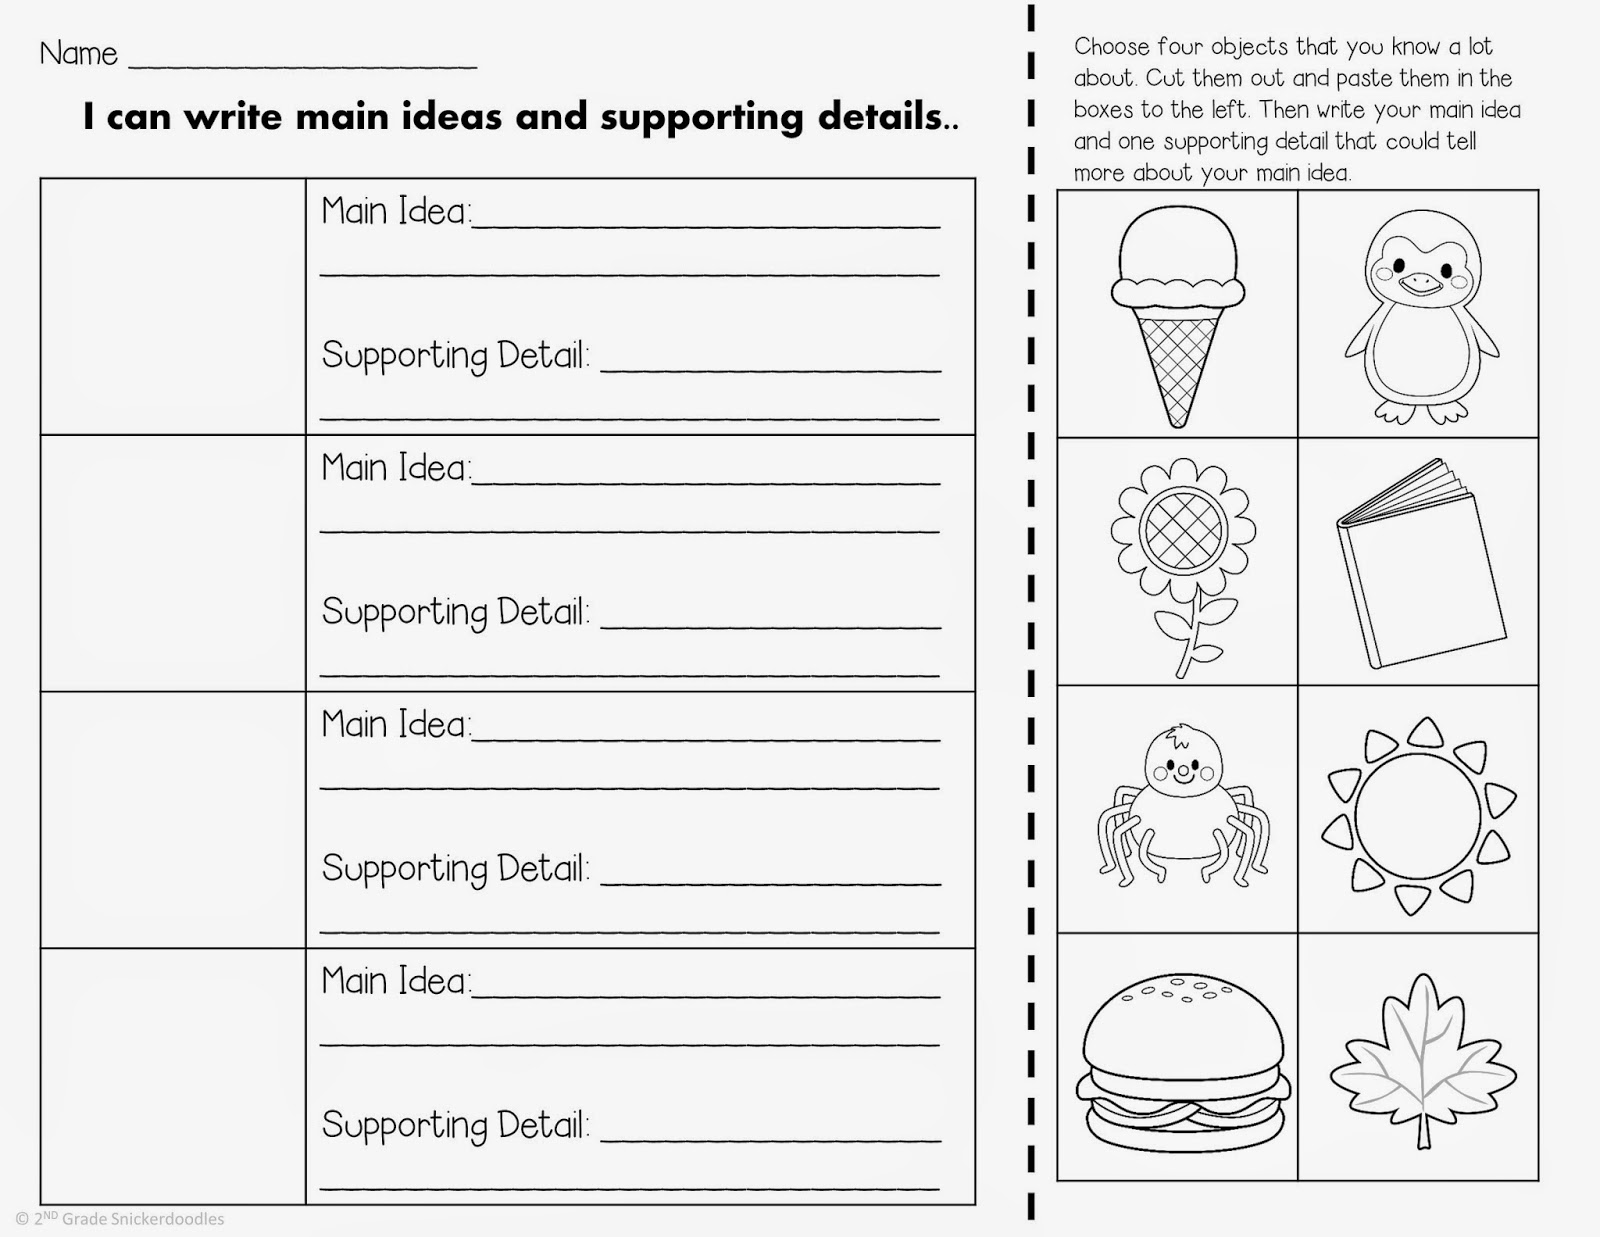 13 Best Images Of Main Idea Detail 2nd Grade Worksheet Key